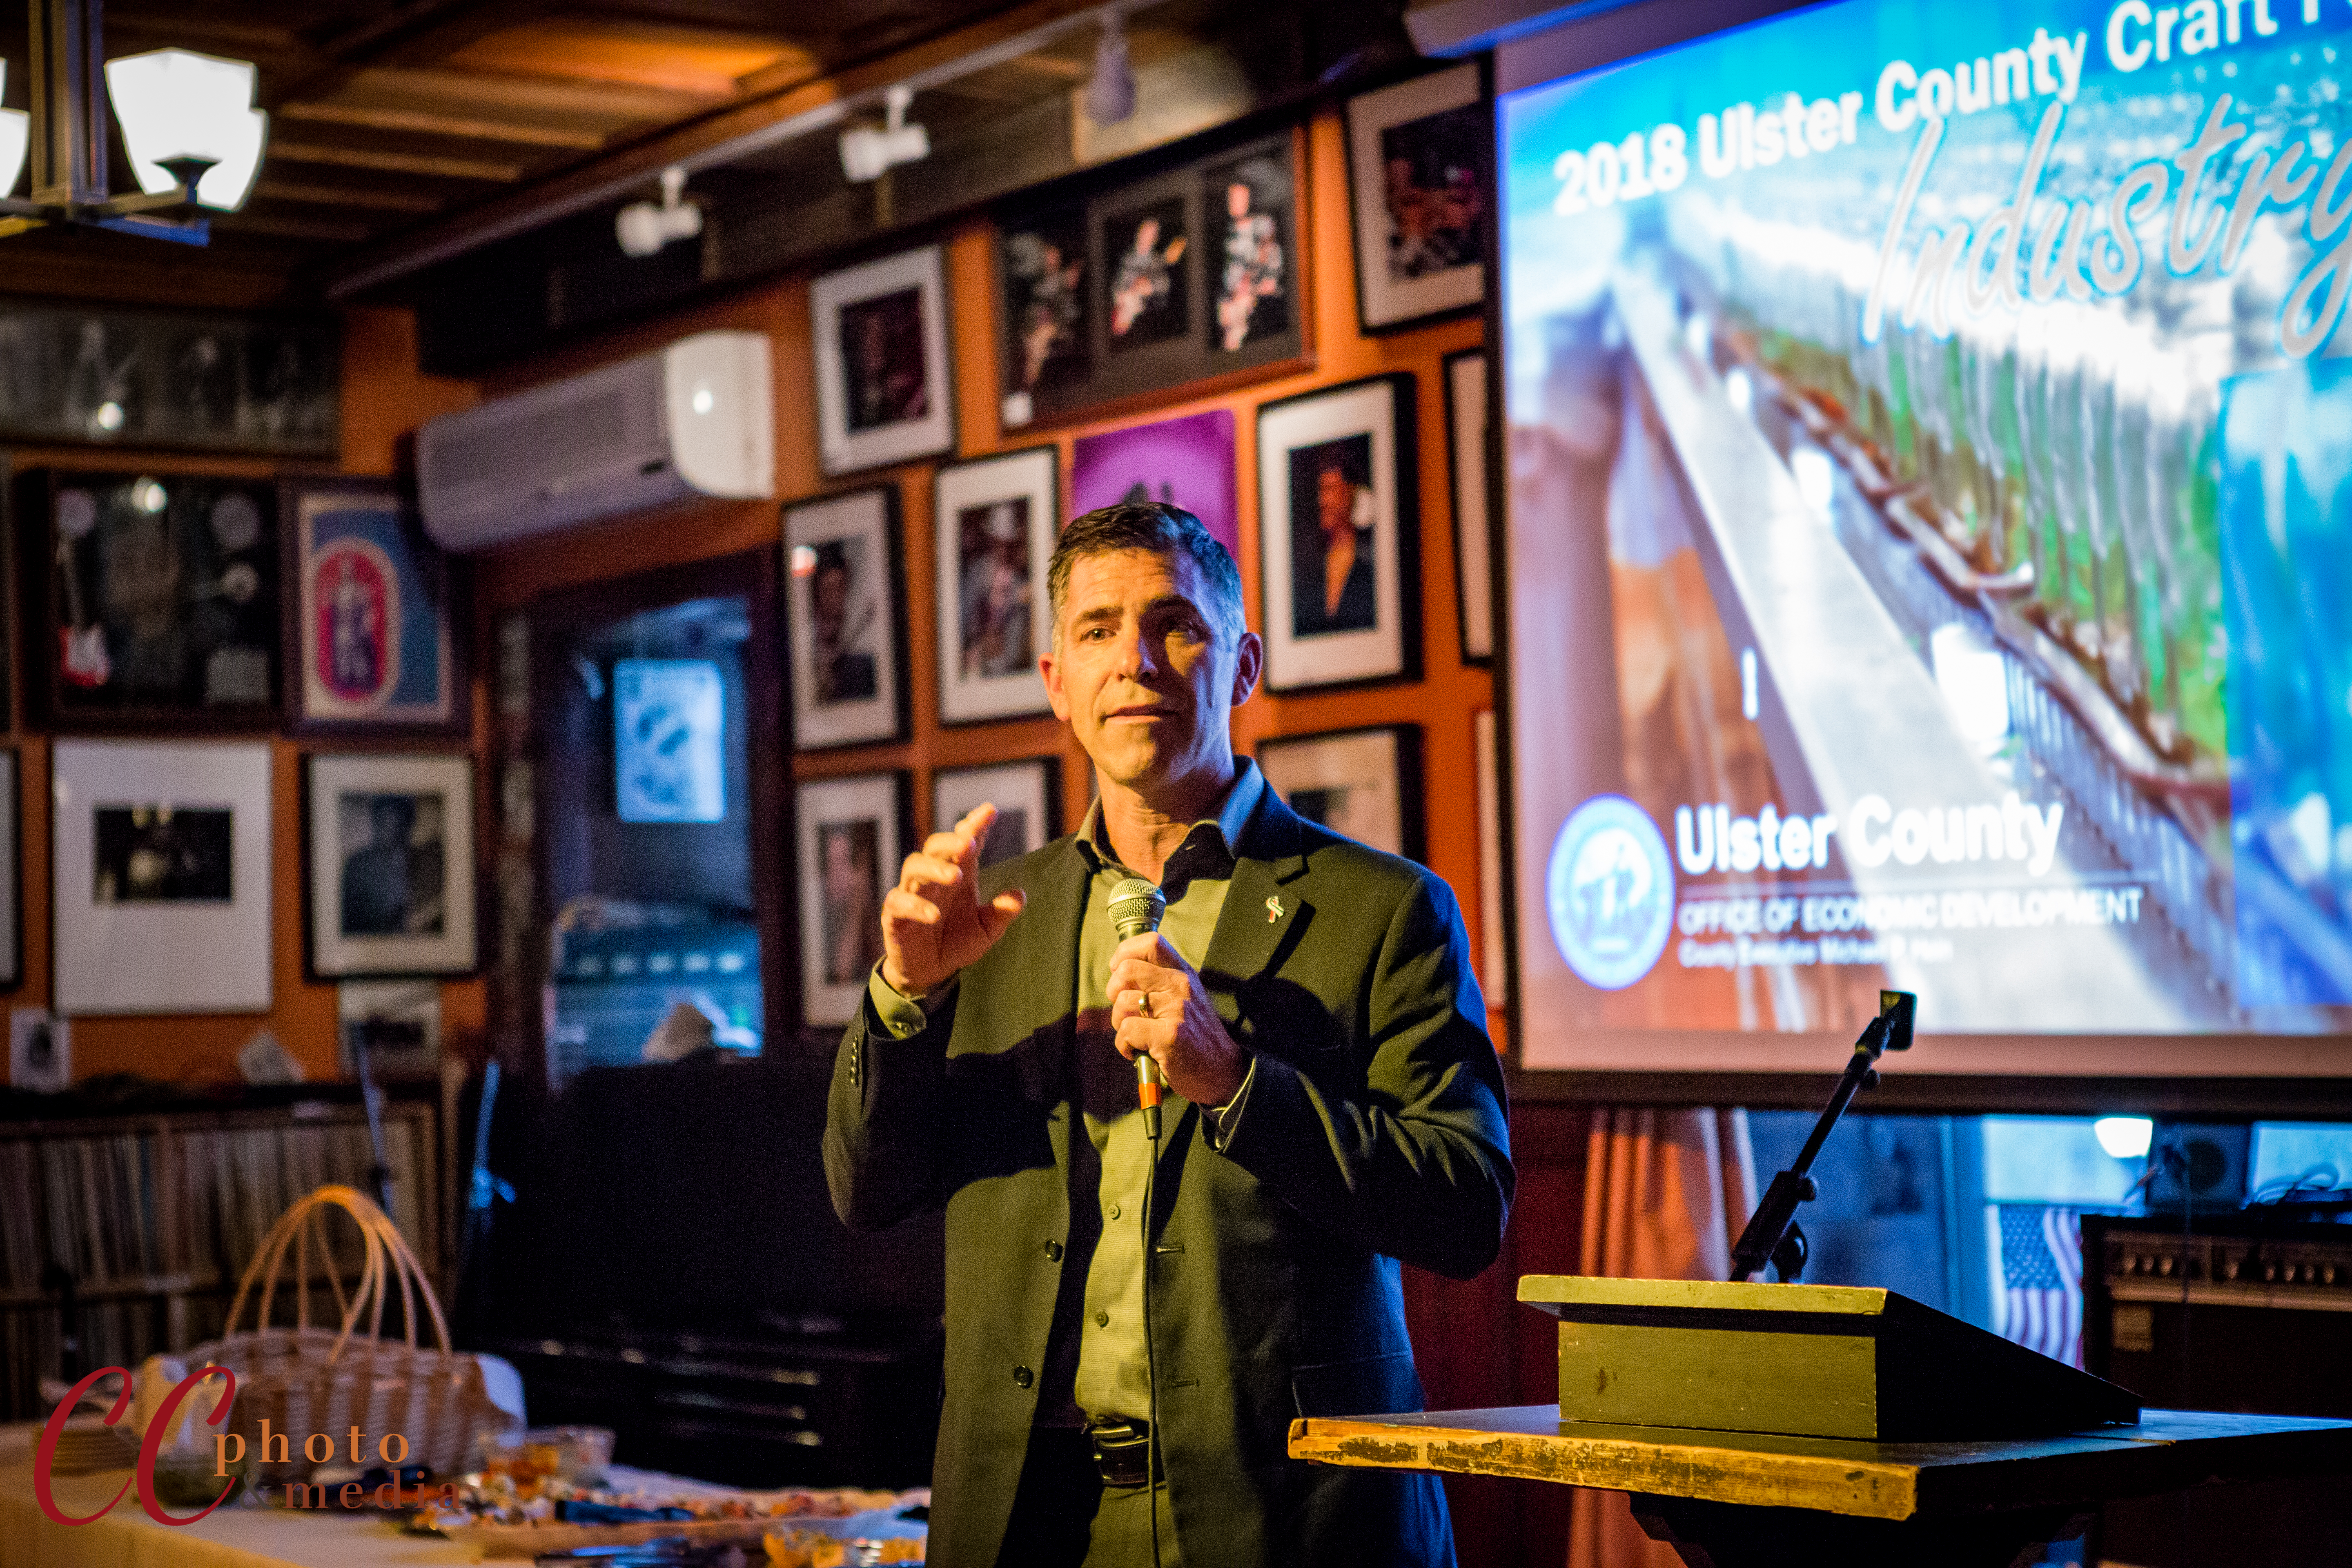 Ulster County Craft Food & Beverage Mixer, April 2018 at The Falcon in Marlboro, NY. Photos by Hudson Valley Photographer Caylena Cahill